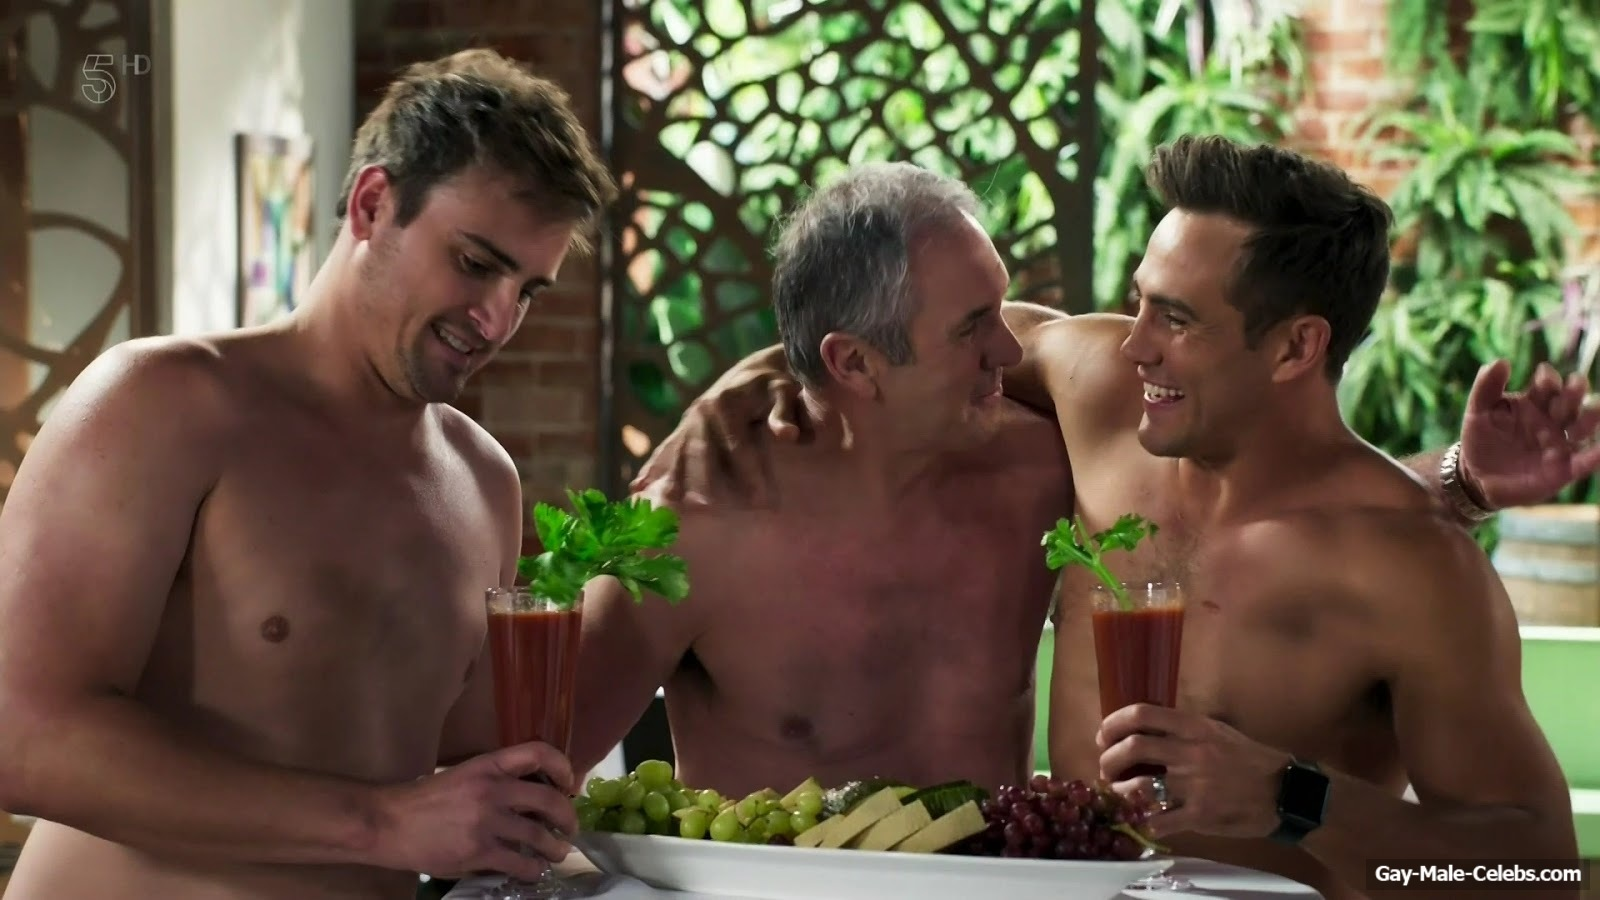 Naked Male Actors ass | male celebs - gay-male-celebs